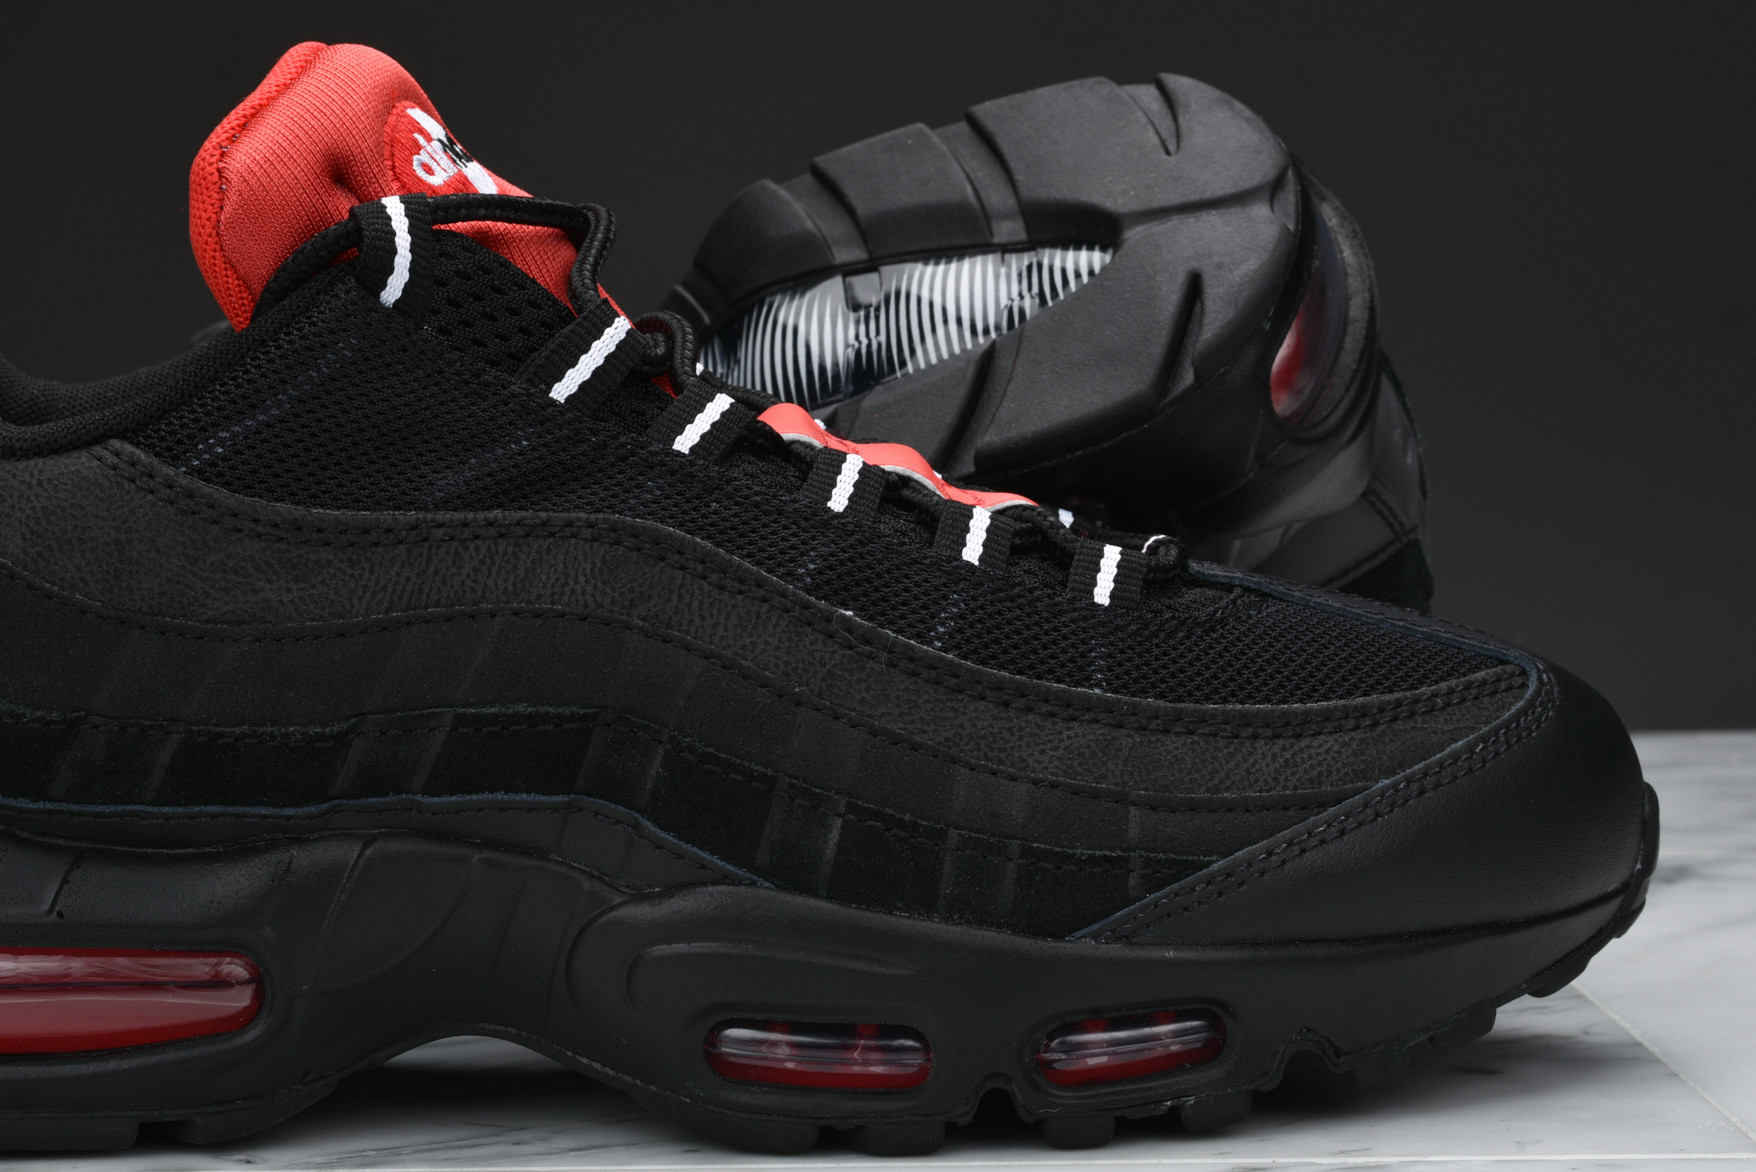 finest selection a5ab7 46f1e Pops Of Challenge Red Highlight This Nike Air Max 95 ...